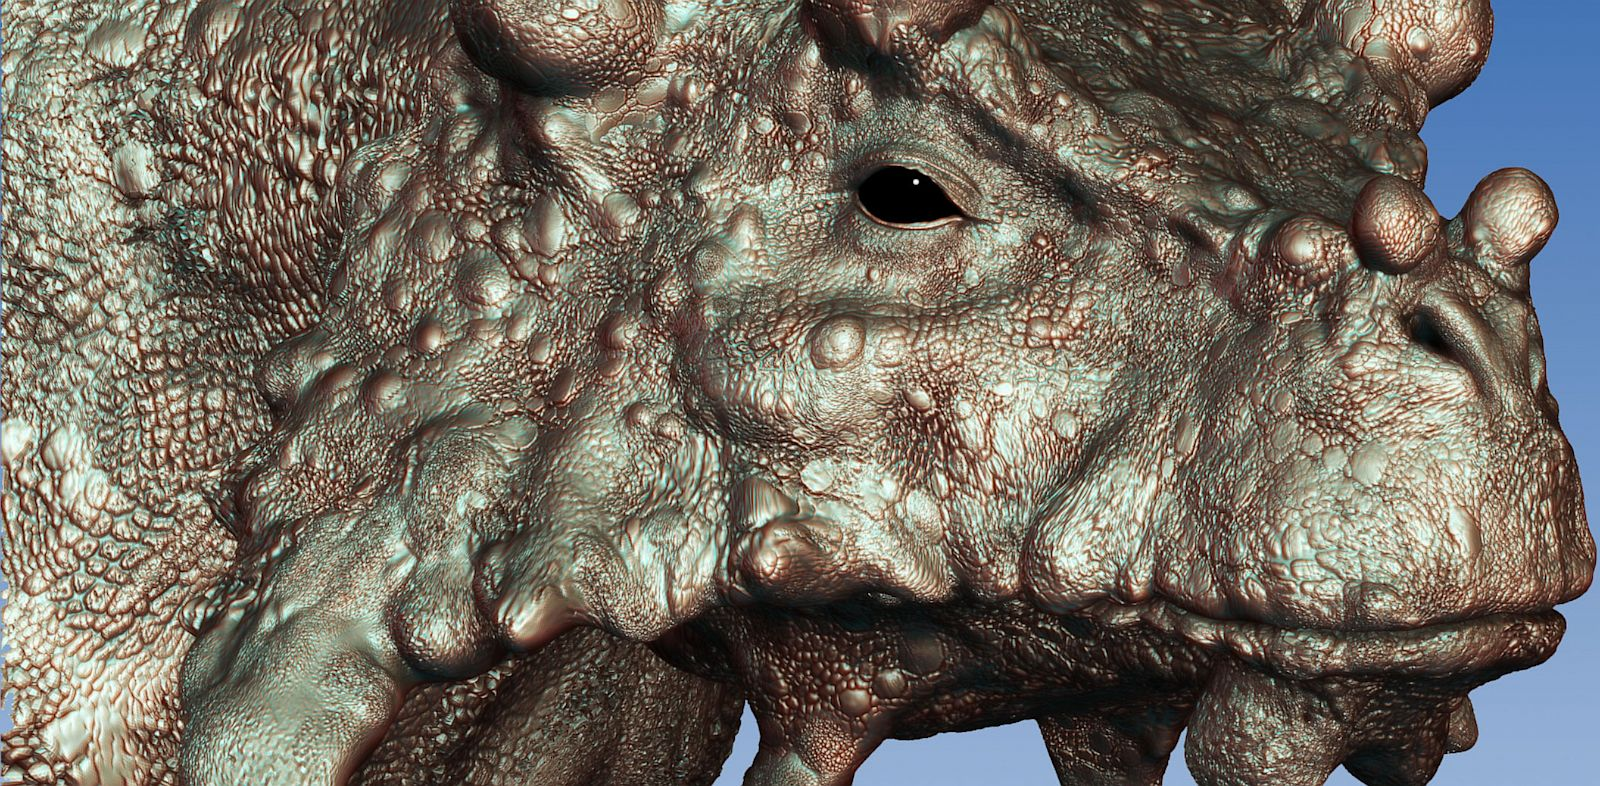 PHOTO: An artists rendering of the Bunostegos and its bump-ridden face.